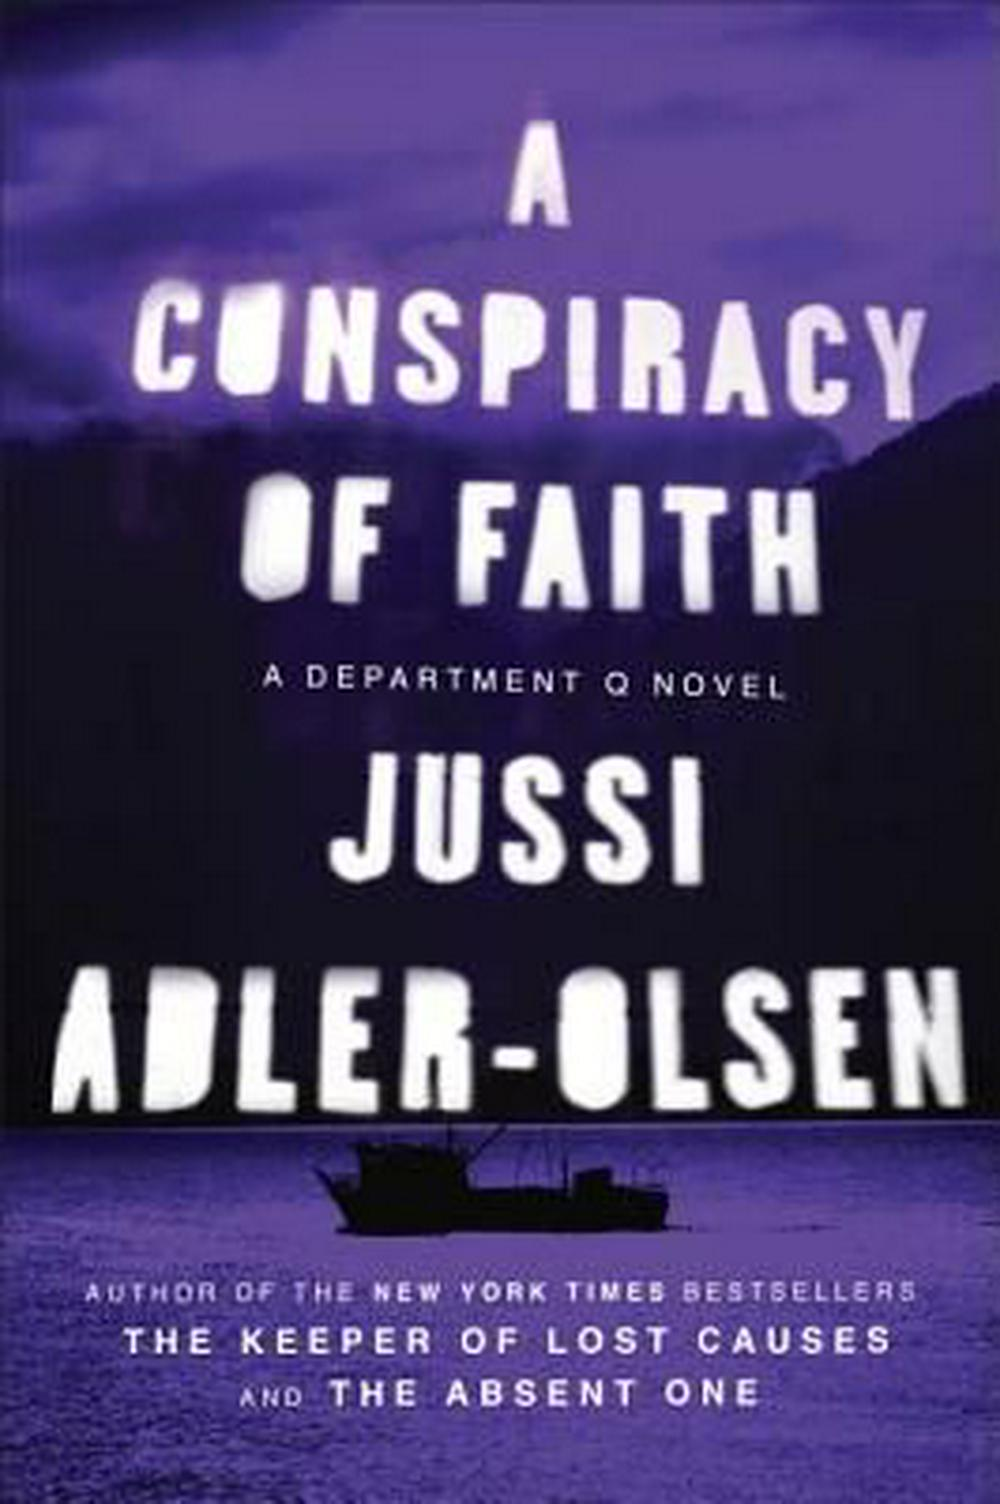 A Conspiracy of Faith by Jussi Adler-Olsen, ISBN: 9780142180815